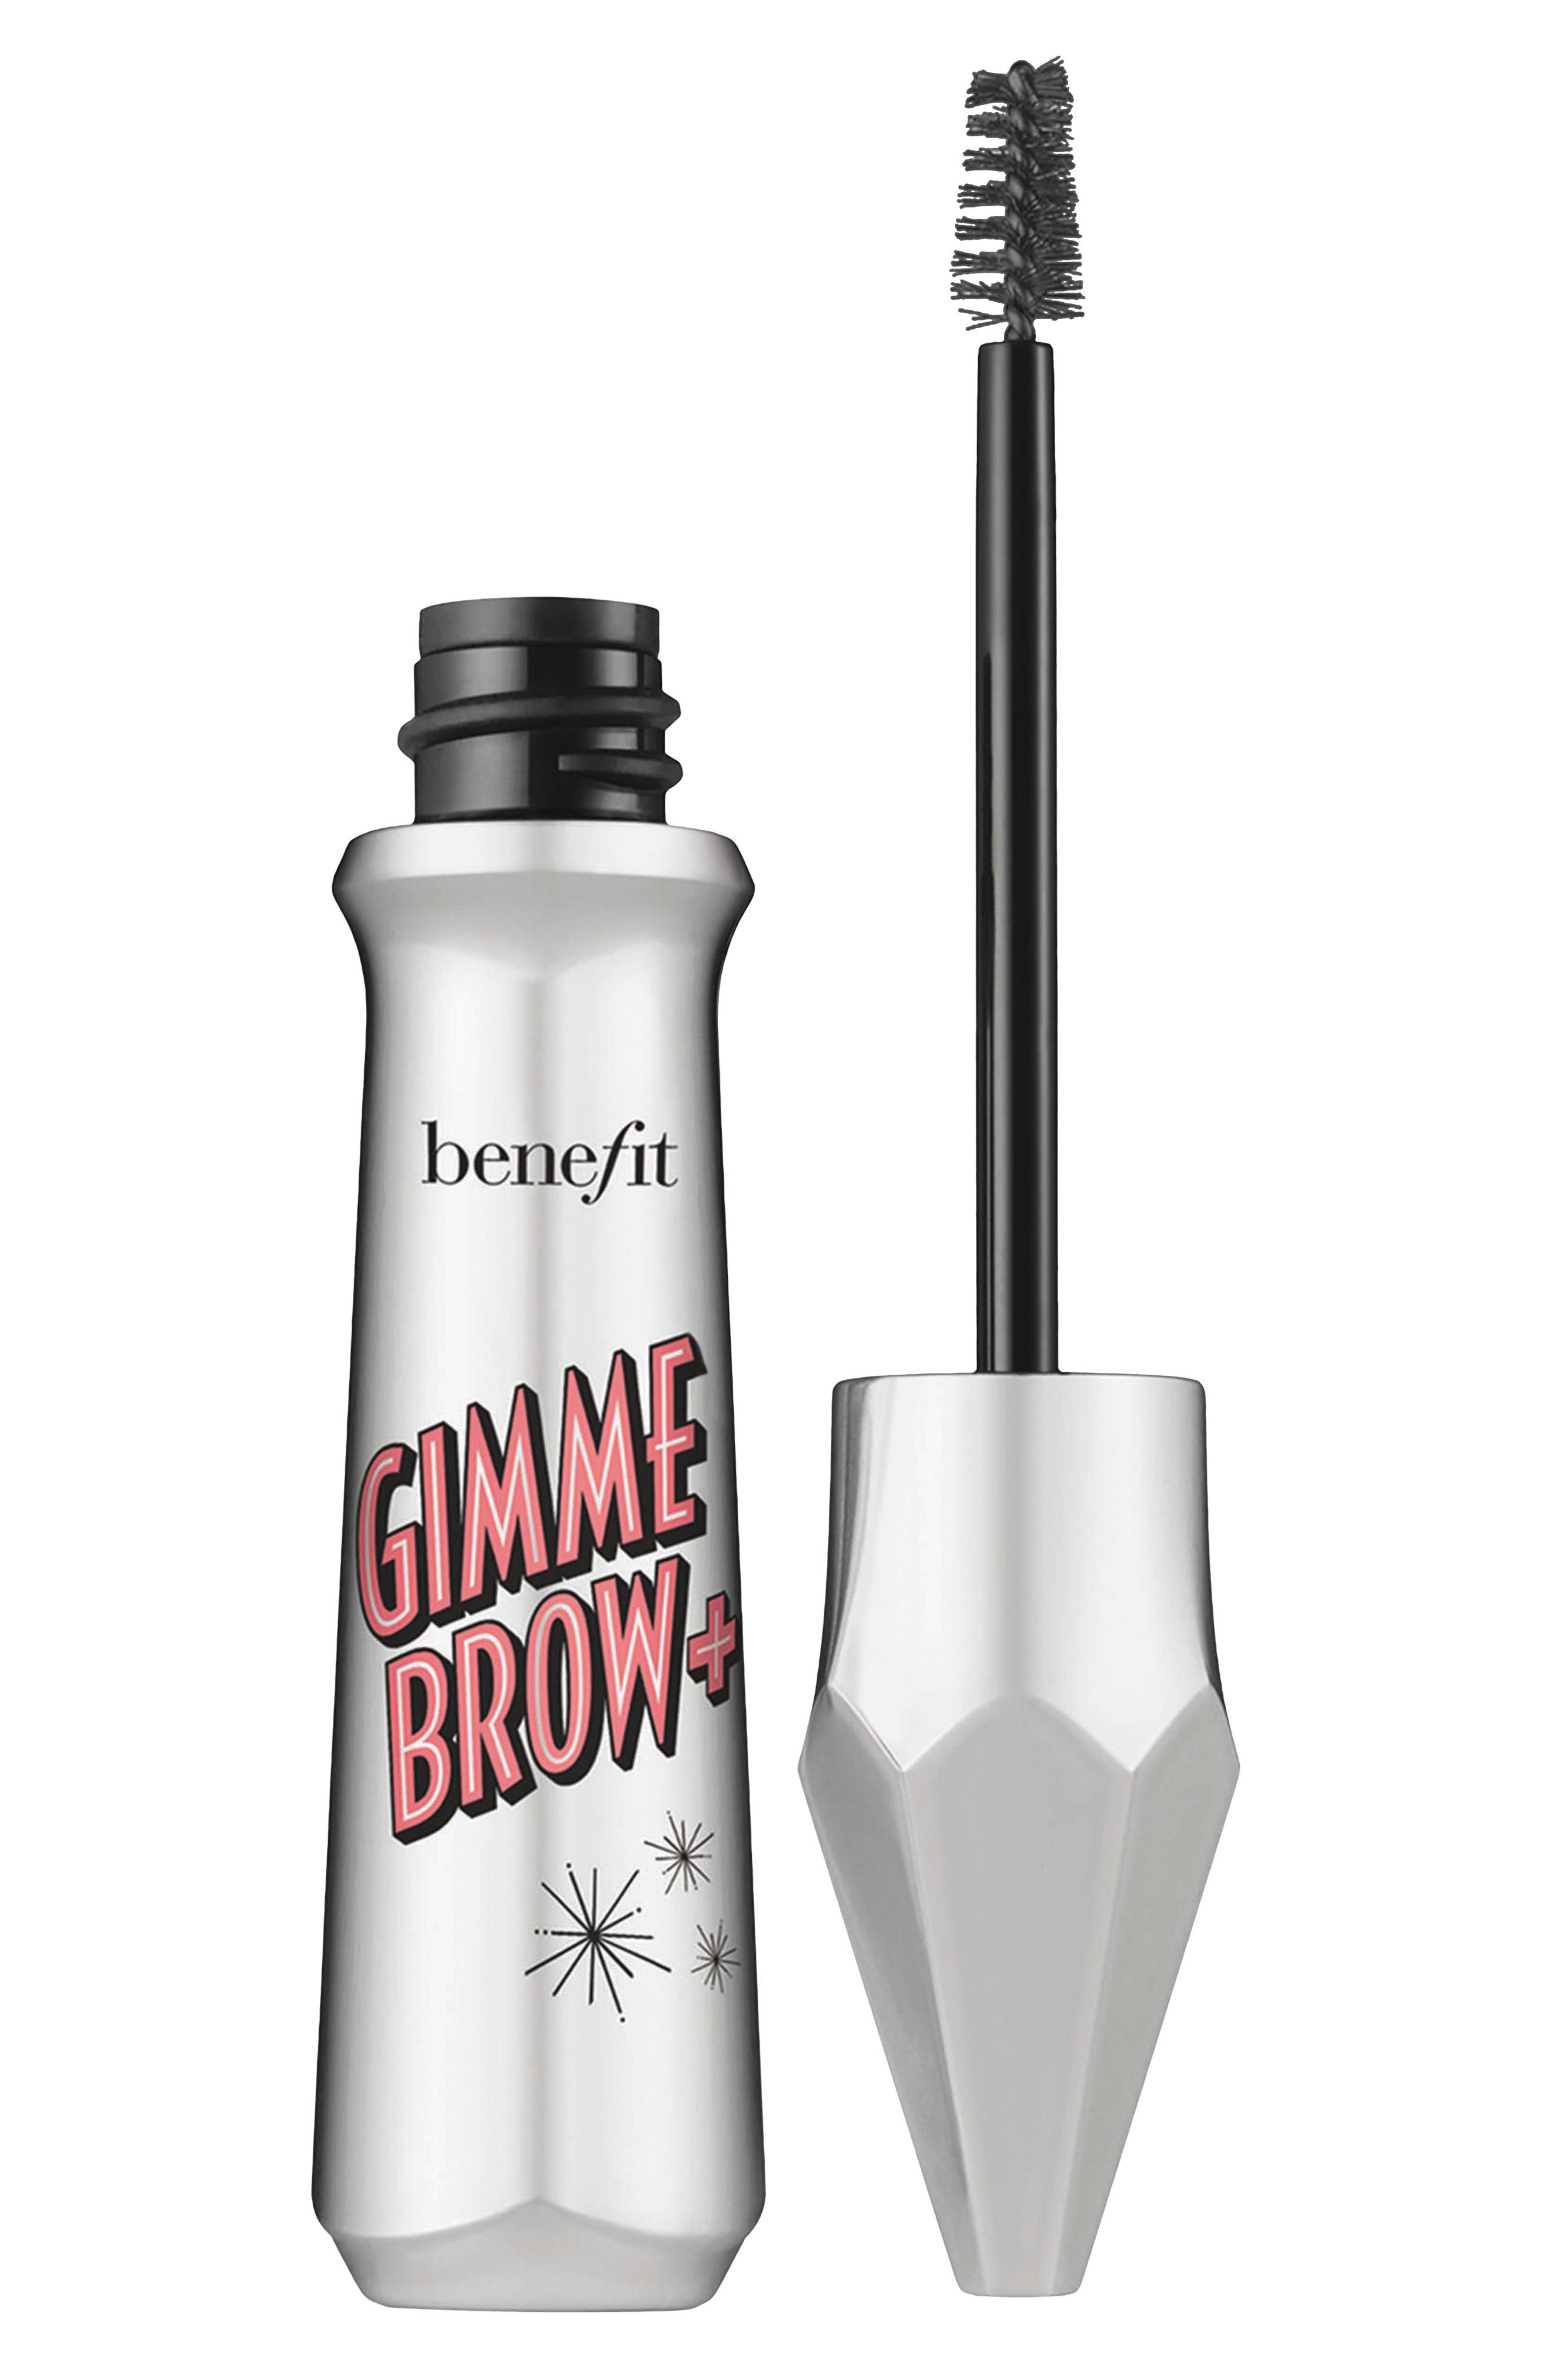 Benefit Gimme Brow+ Volumizing Eyebrow Gel,                             Alternate thumbnail 13, color,                             01 LIGHT/COOL LIGHT BLONDE